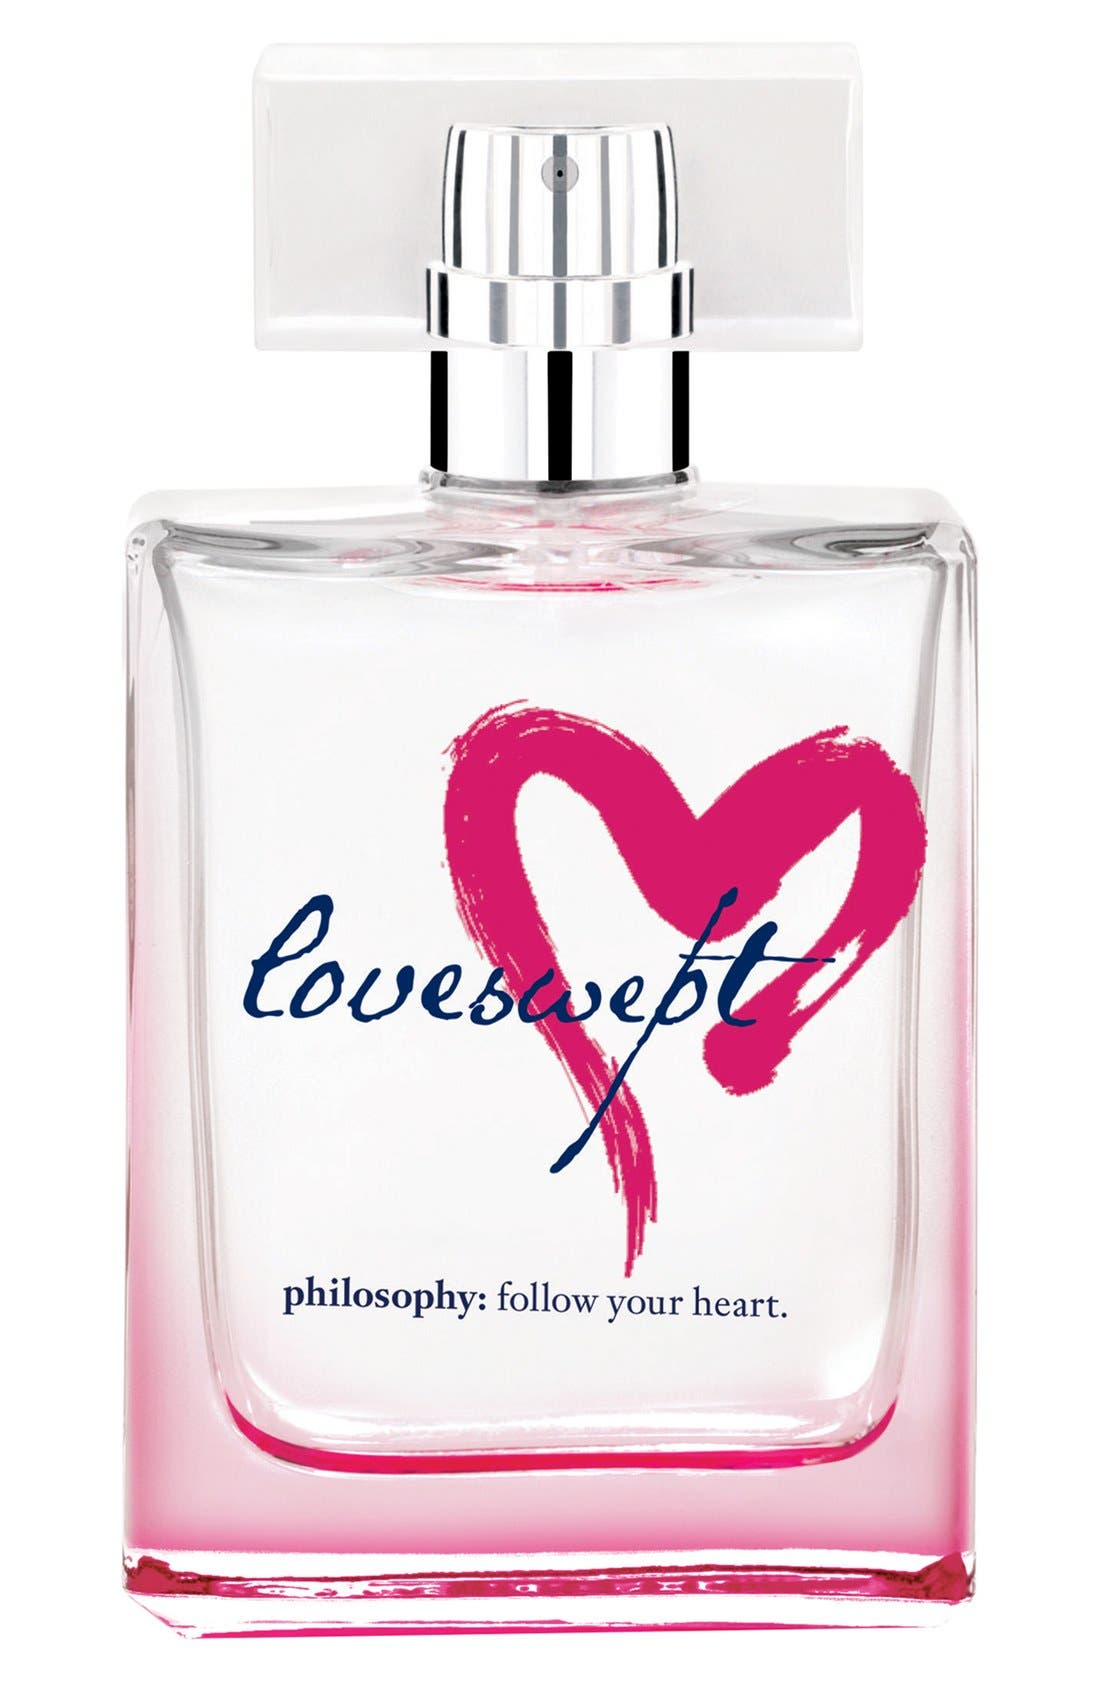 philosophy 'loveswept' eau de parfum (2 oz.)